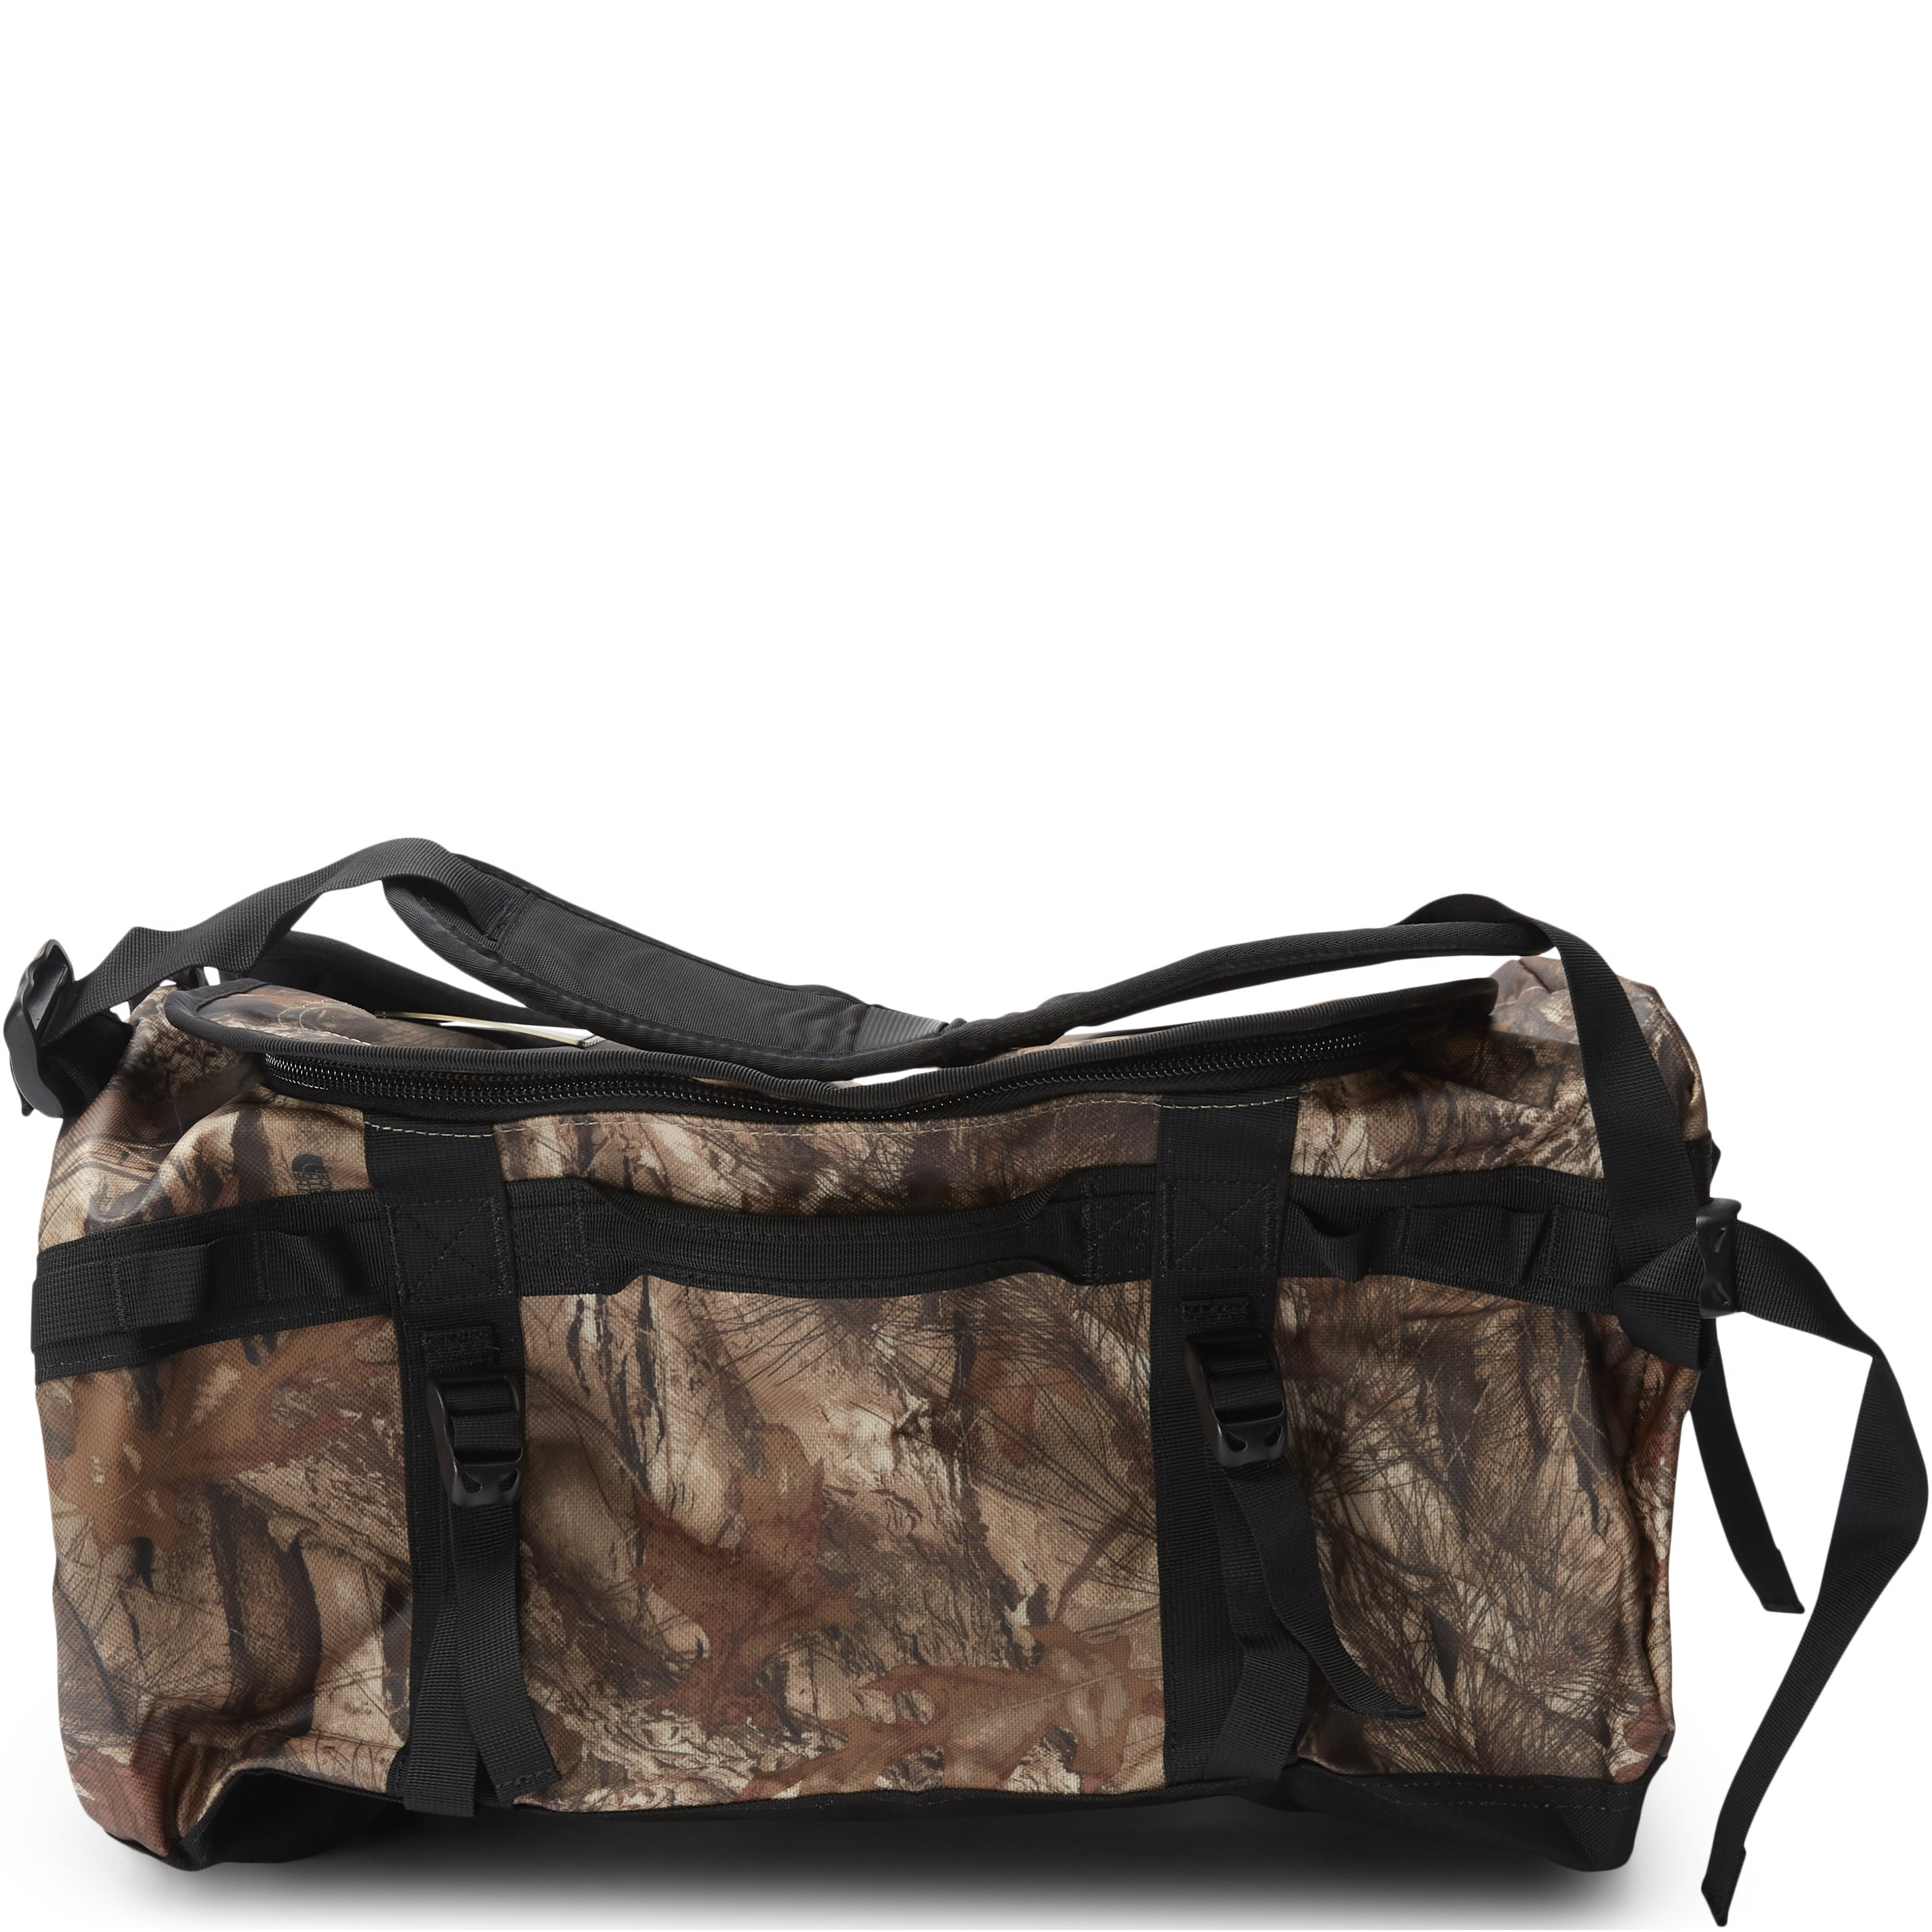 Base Camp Duffel S Bag - Tasker - Army